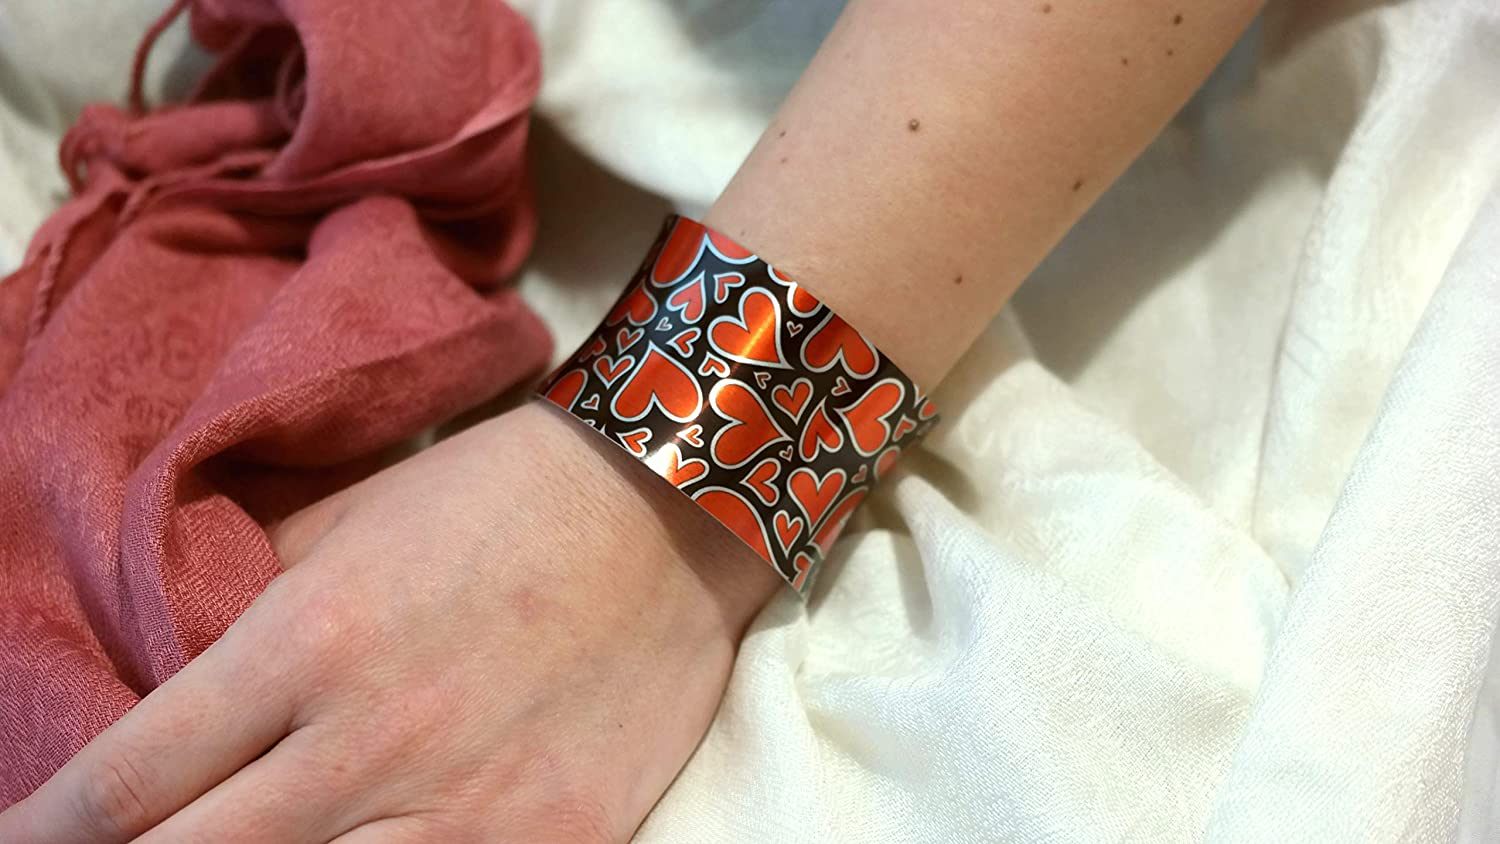 Aluminum Charm Cuff Bracelet Printed with Sublimation Ink,Coated with Premium Anti-Allergic Material,Colorefull Cuff Bracelet Handmade Personalized Bracelet for Girls